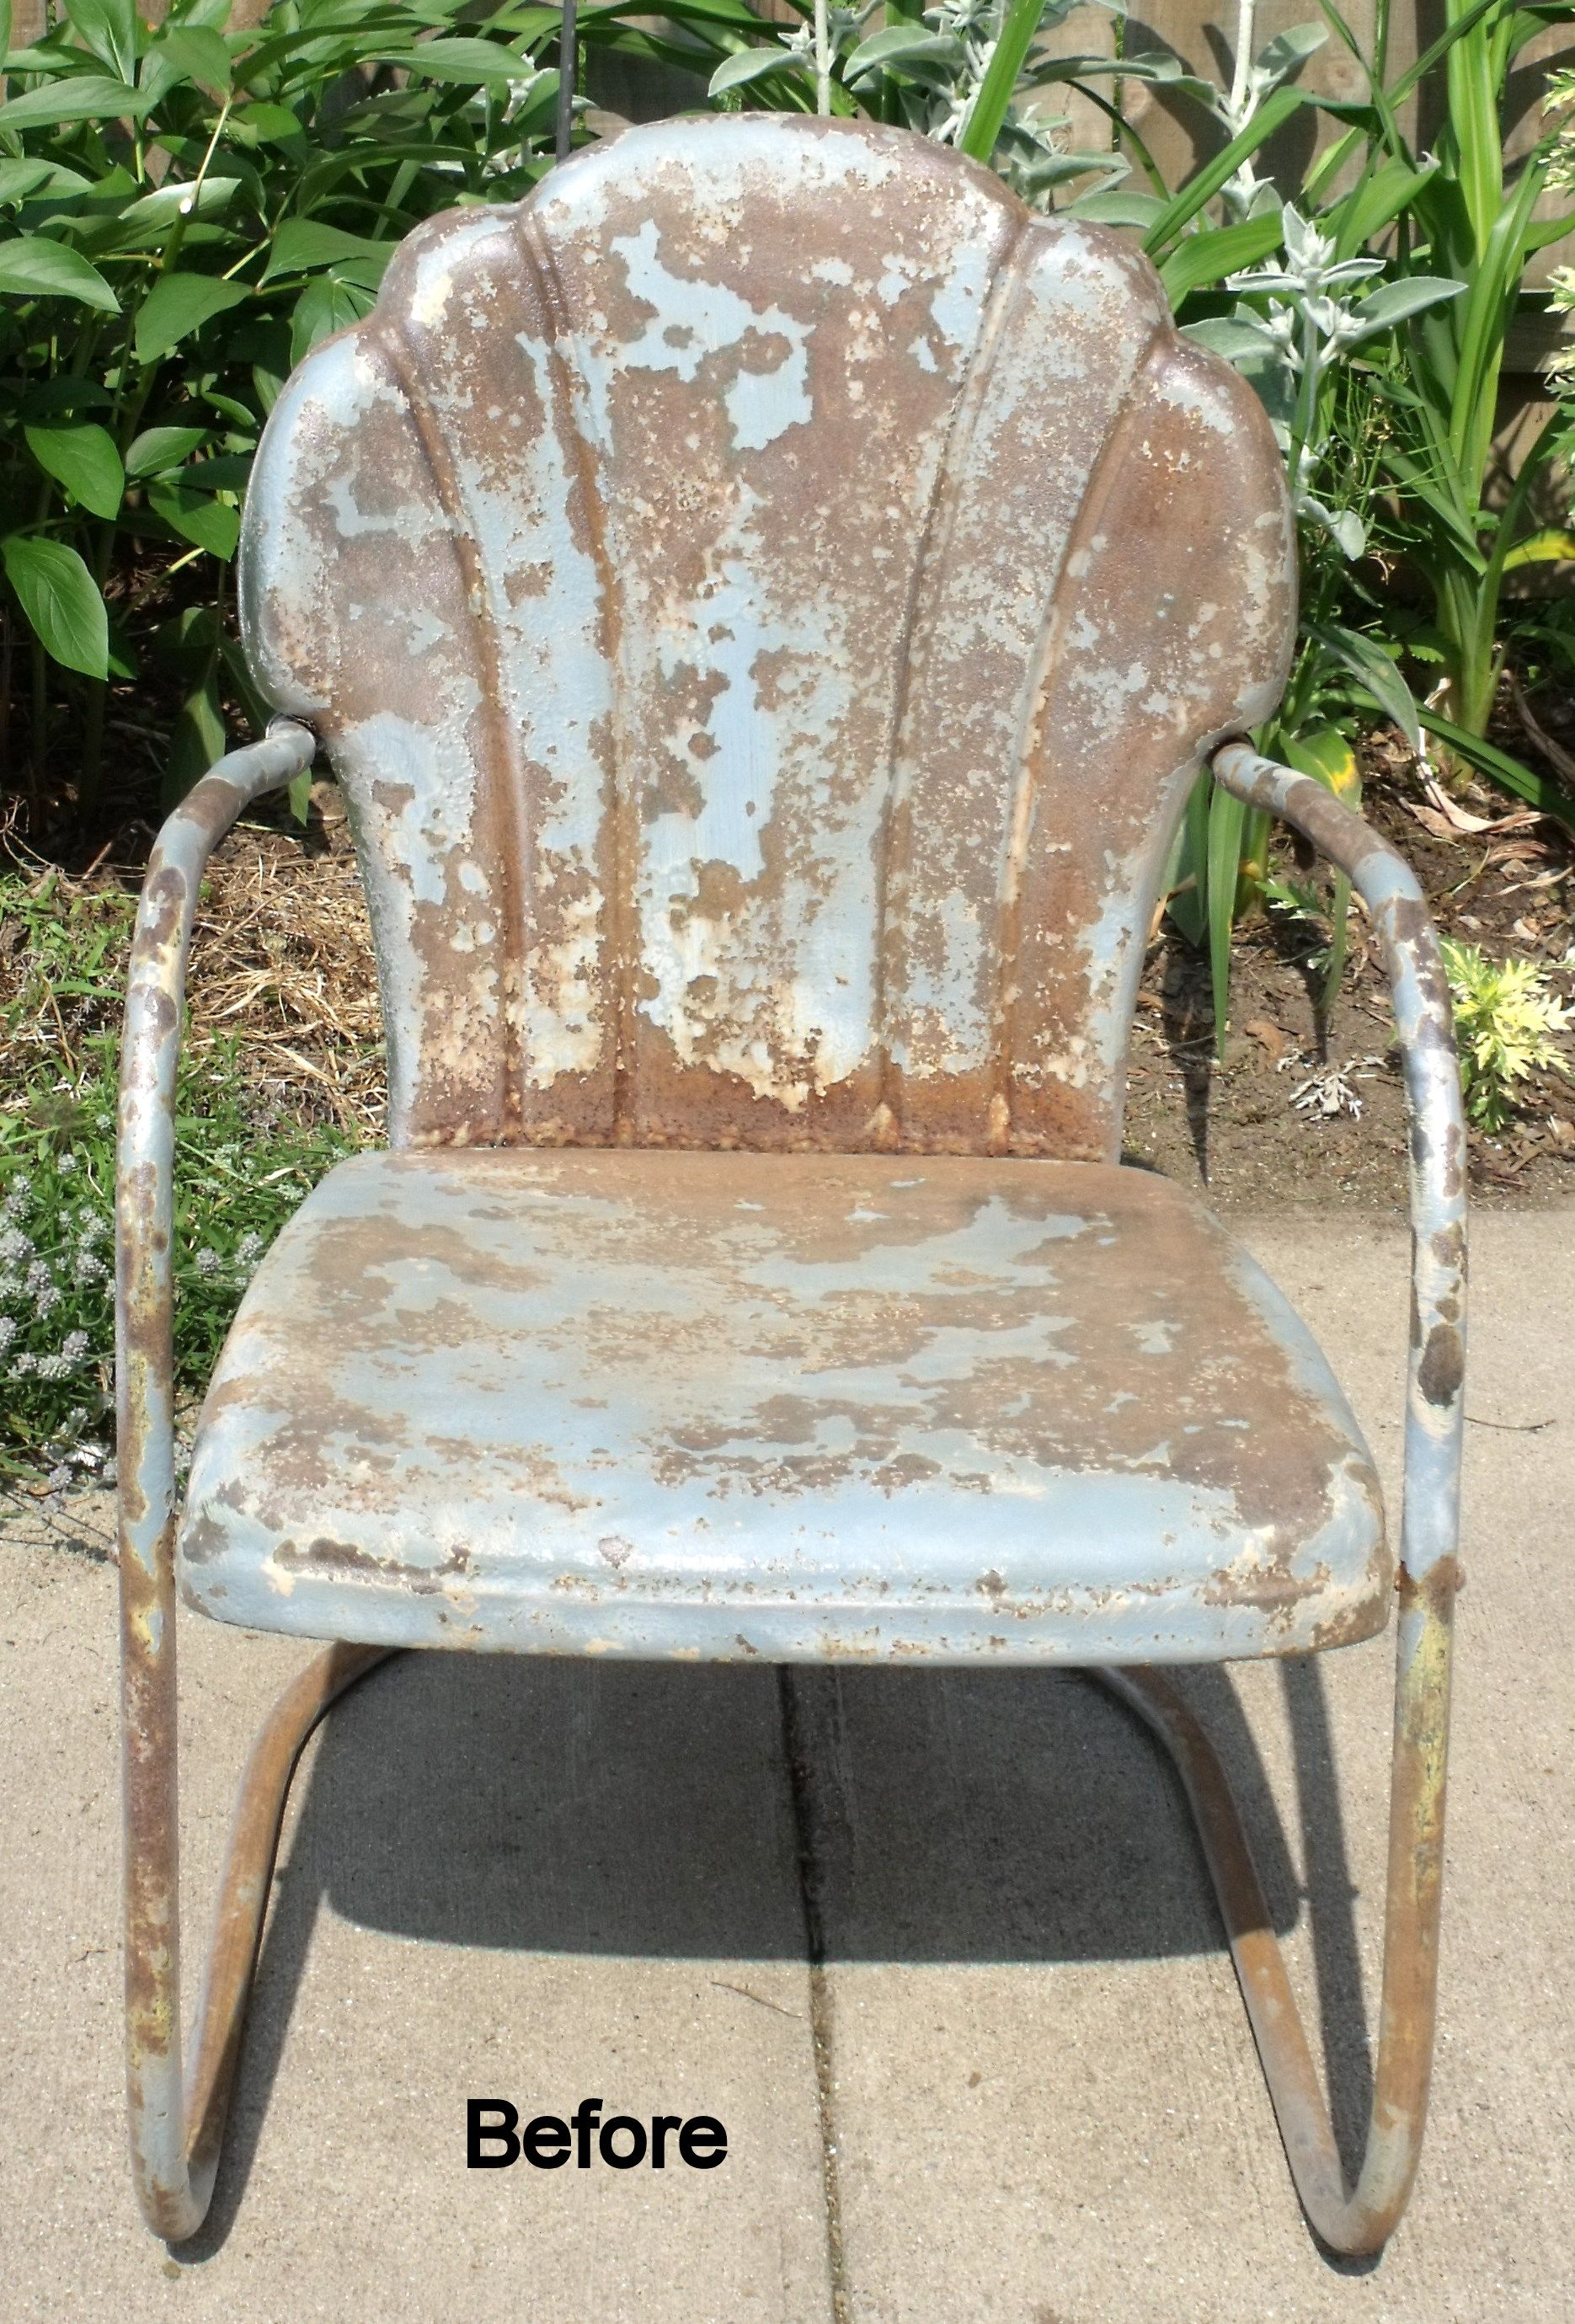 Metal Lawn Chair Makeover Oasis Accents Paint' Stain